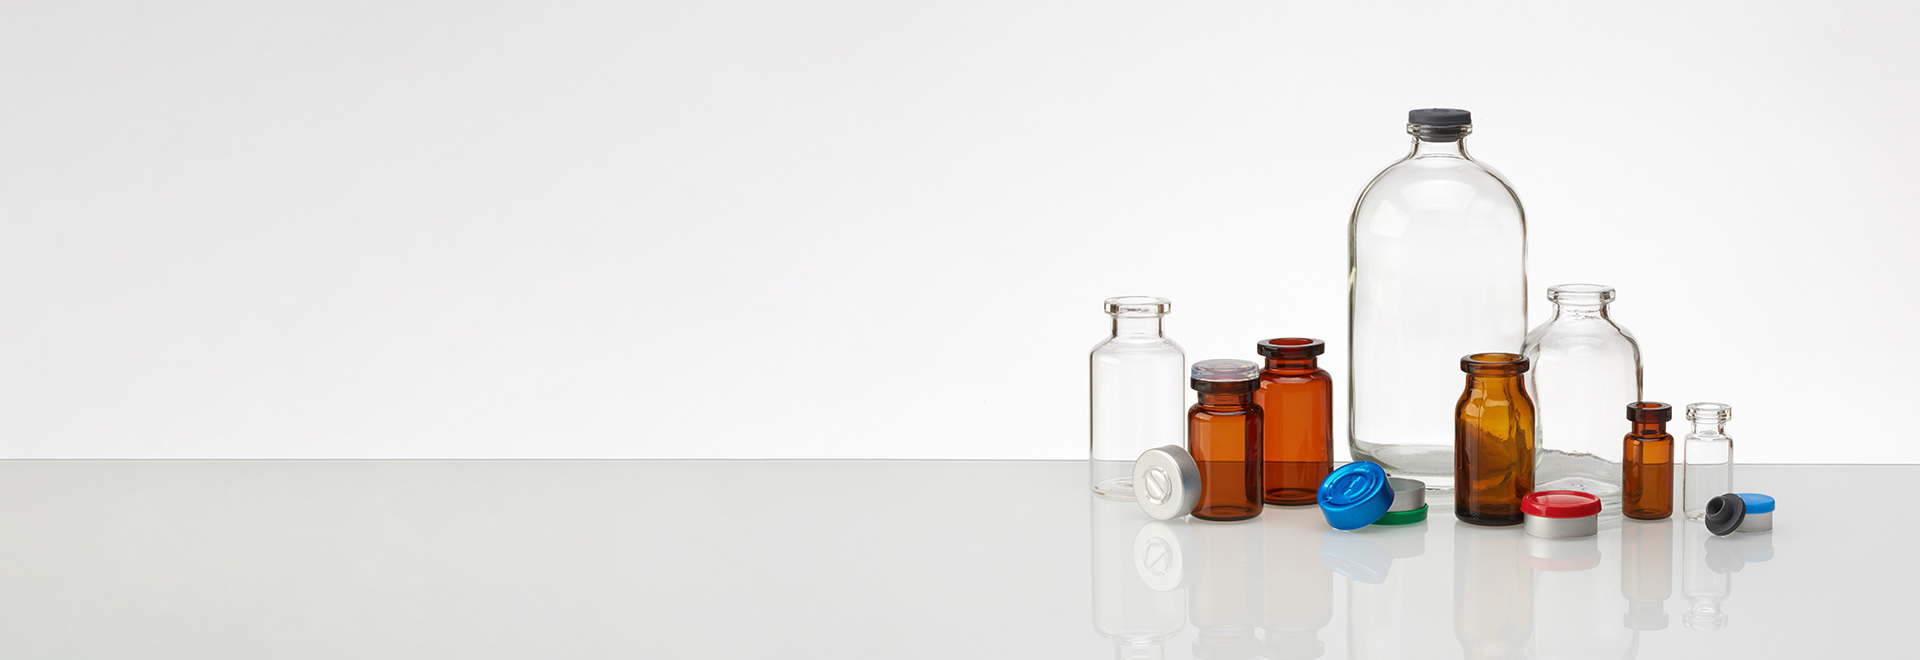 Compound Pharmacy Packaging